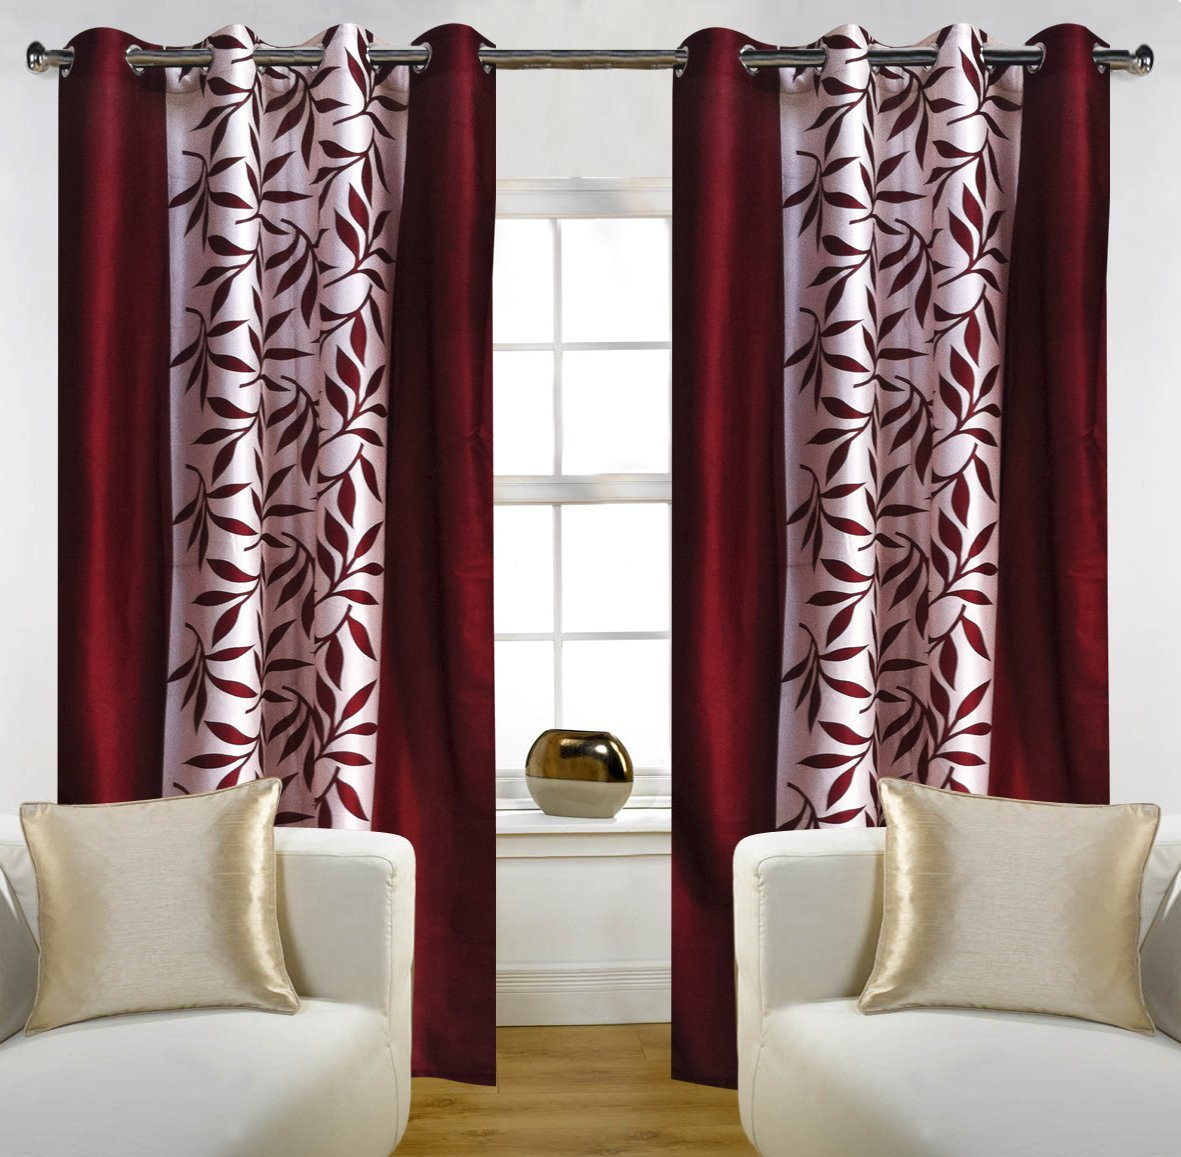 Bead Curtain Room Divider Tie Backs Curtains For Closets Doors